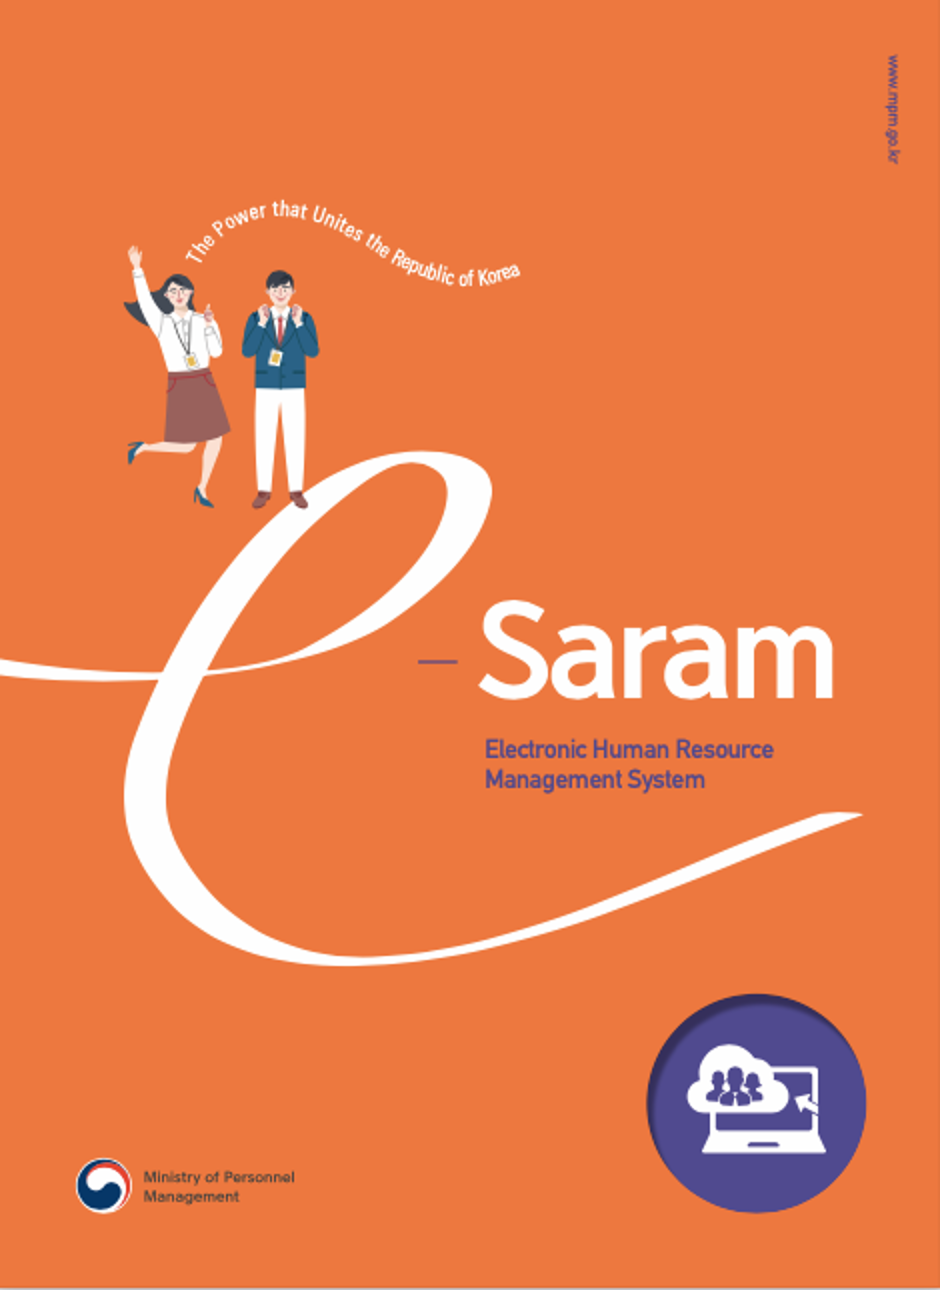 The Power that Unites the Republic of Korea: e-Saram Electronic Human Resource Management System